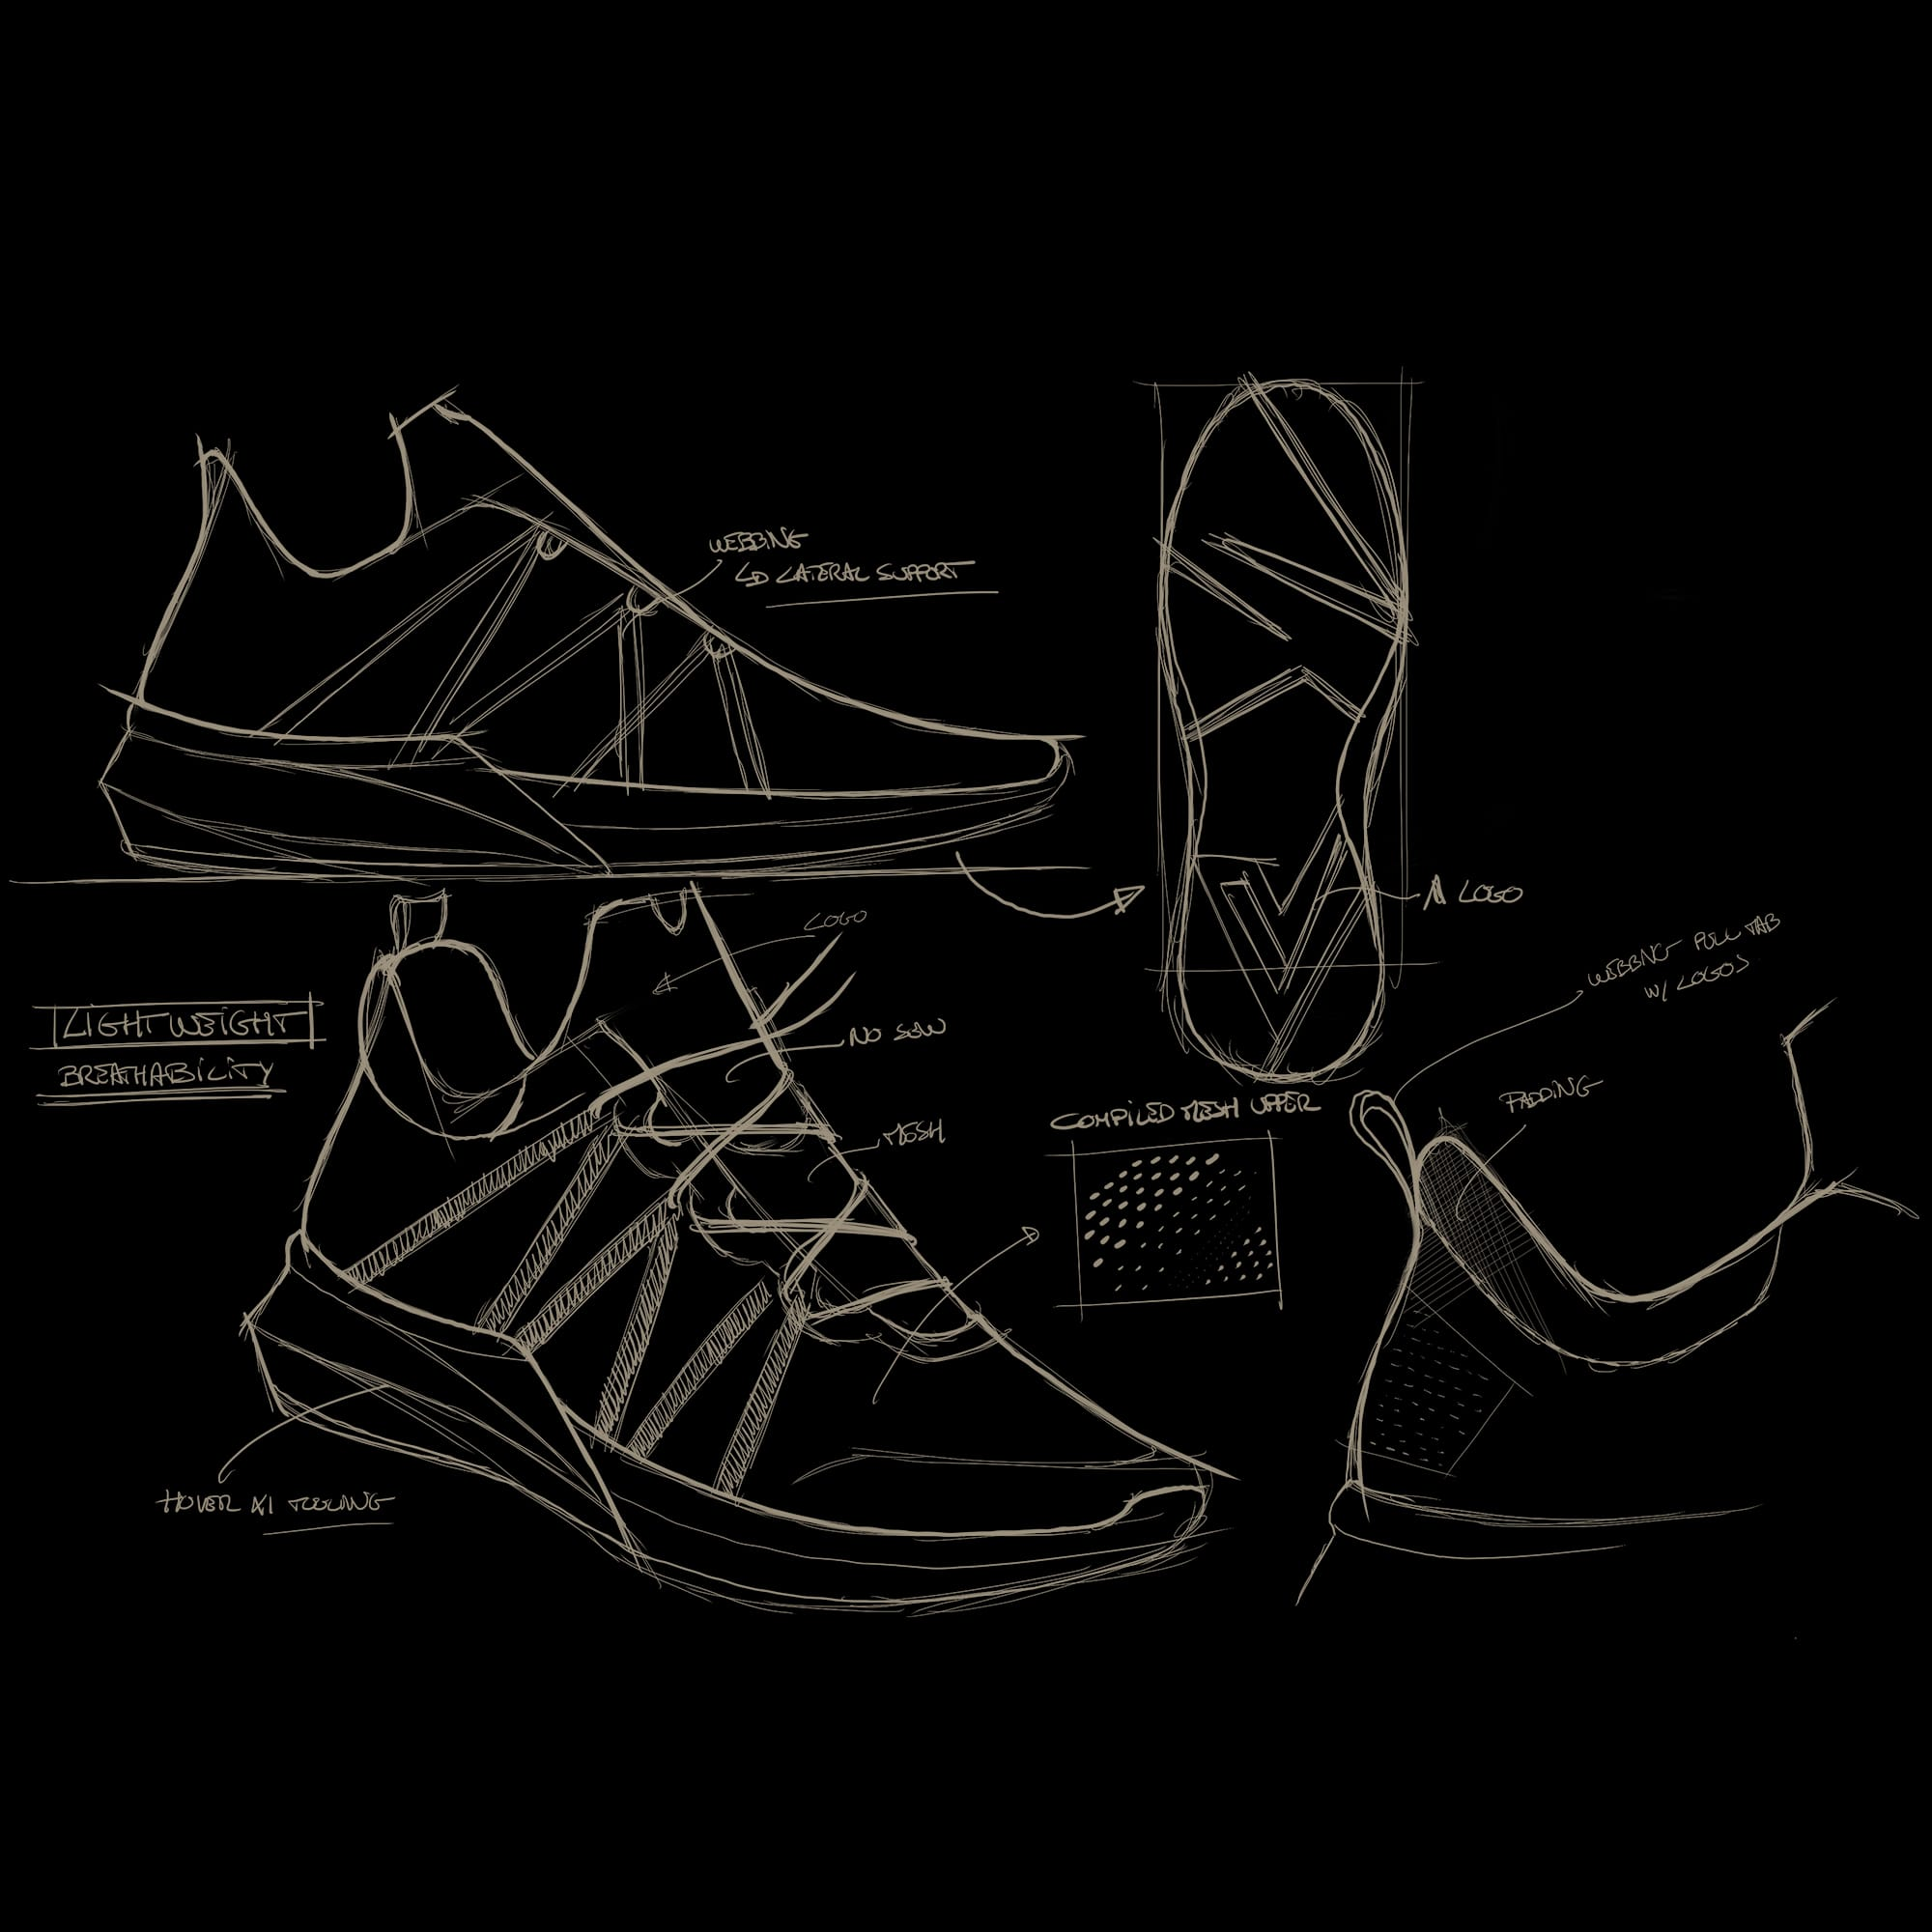 Early Velcalite sneaker sketch by Martin Chapuy